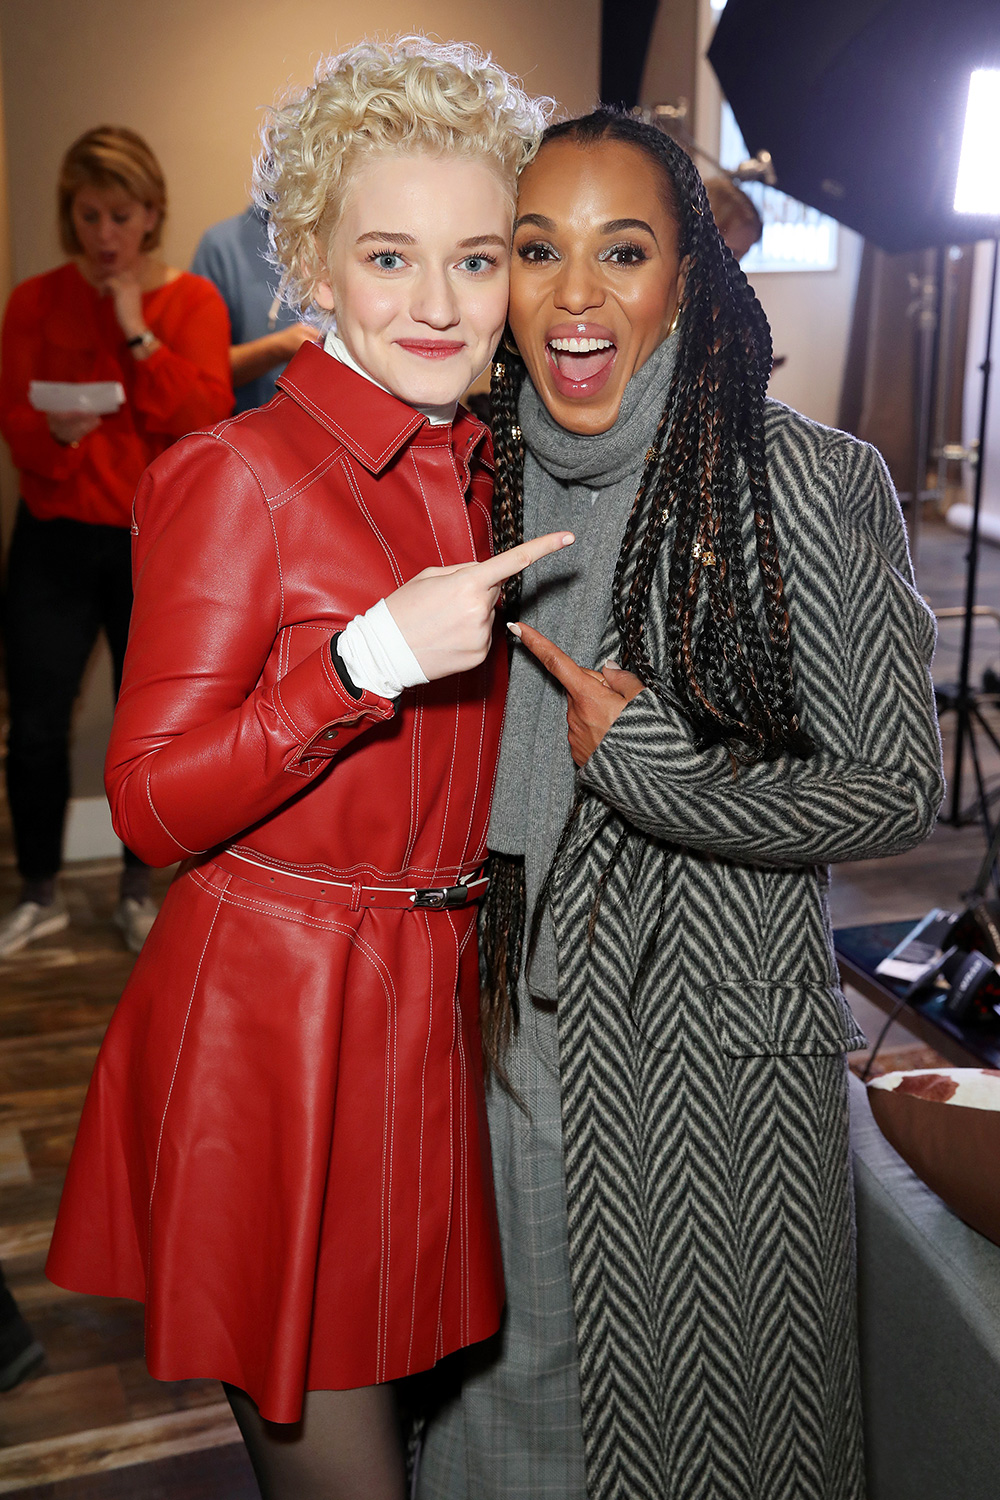 """Julia Garner of """"The Assistant"""" and Producer Kerry Washington of """"The Fight"""" stop by TheWrap Studio sponsored by Heineken at Sundance Film Festival on January 26, 2020 in Park City, Utah"""